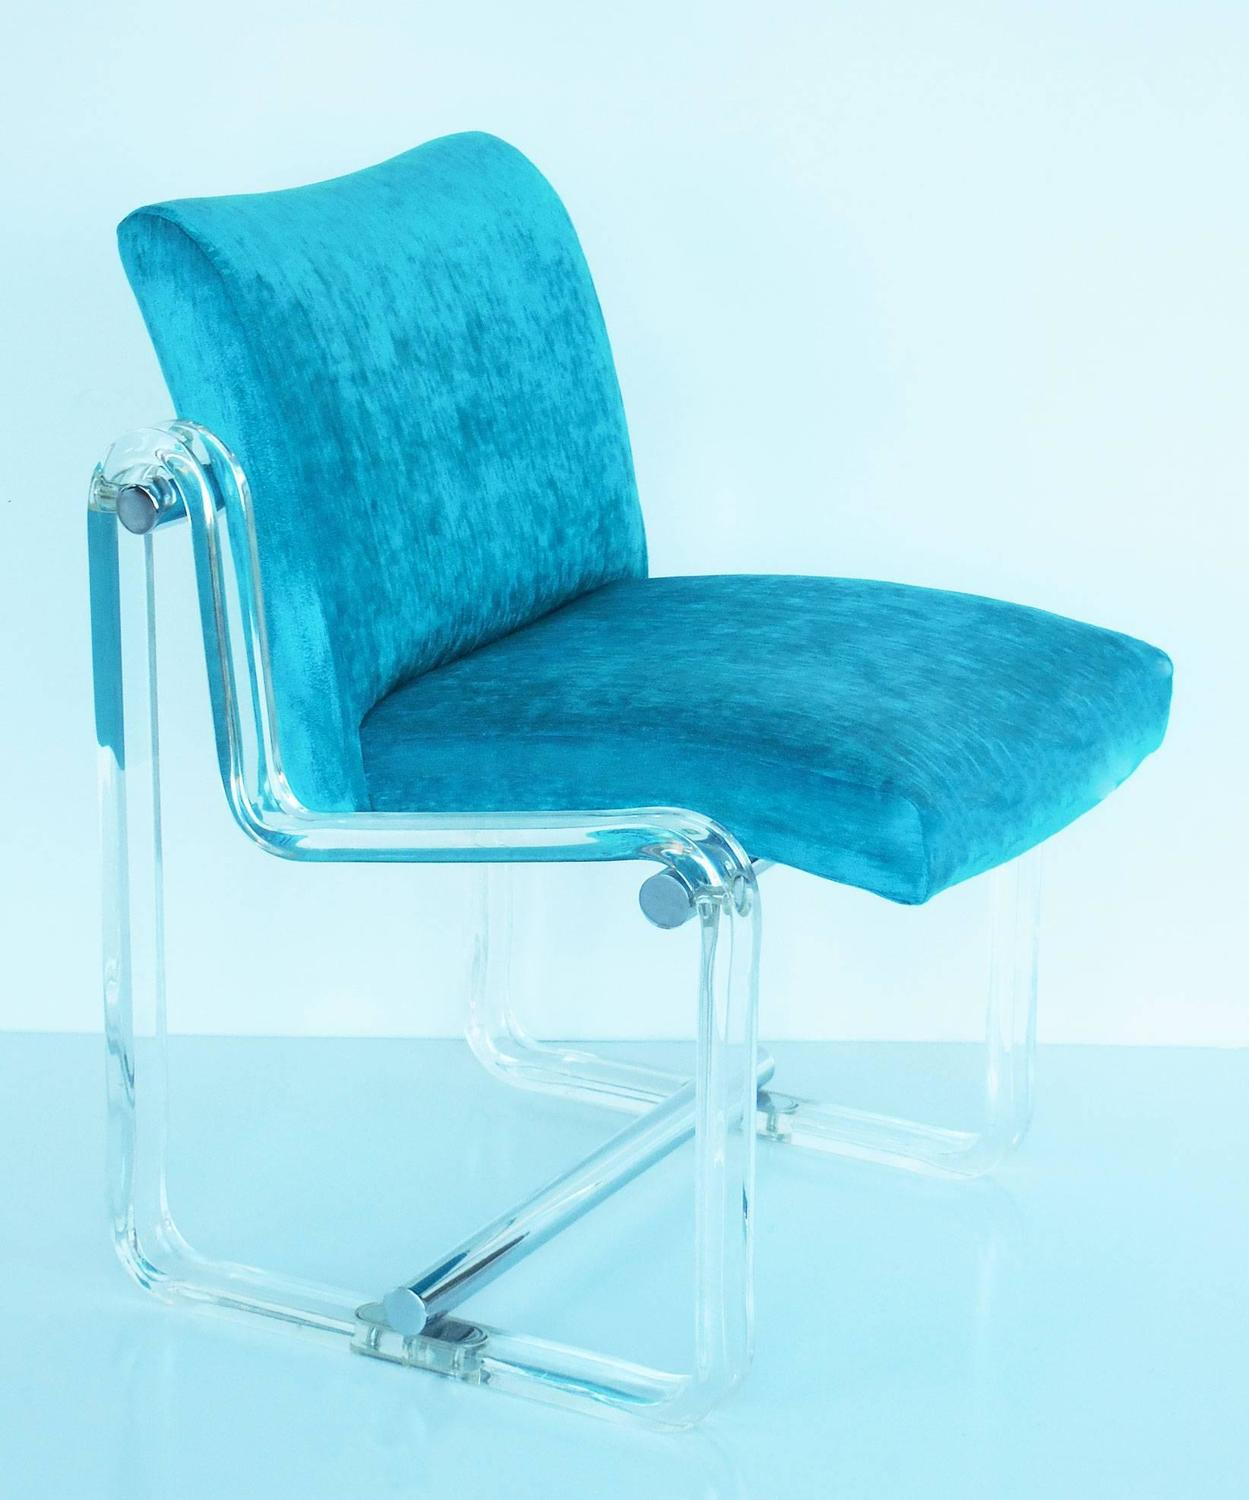 Six turquoise lucite and chrome dining chairs 1970s at 1stdibs - Turquoise upholstered dining chair ...